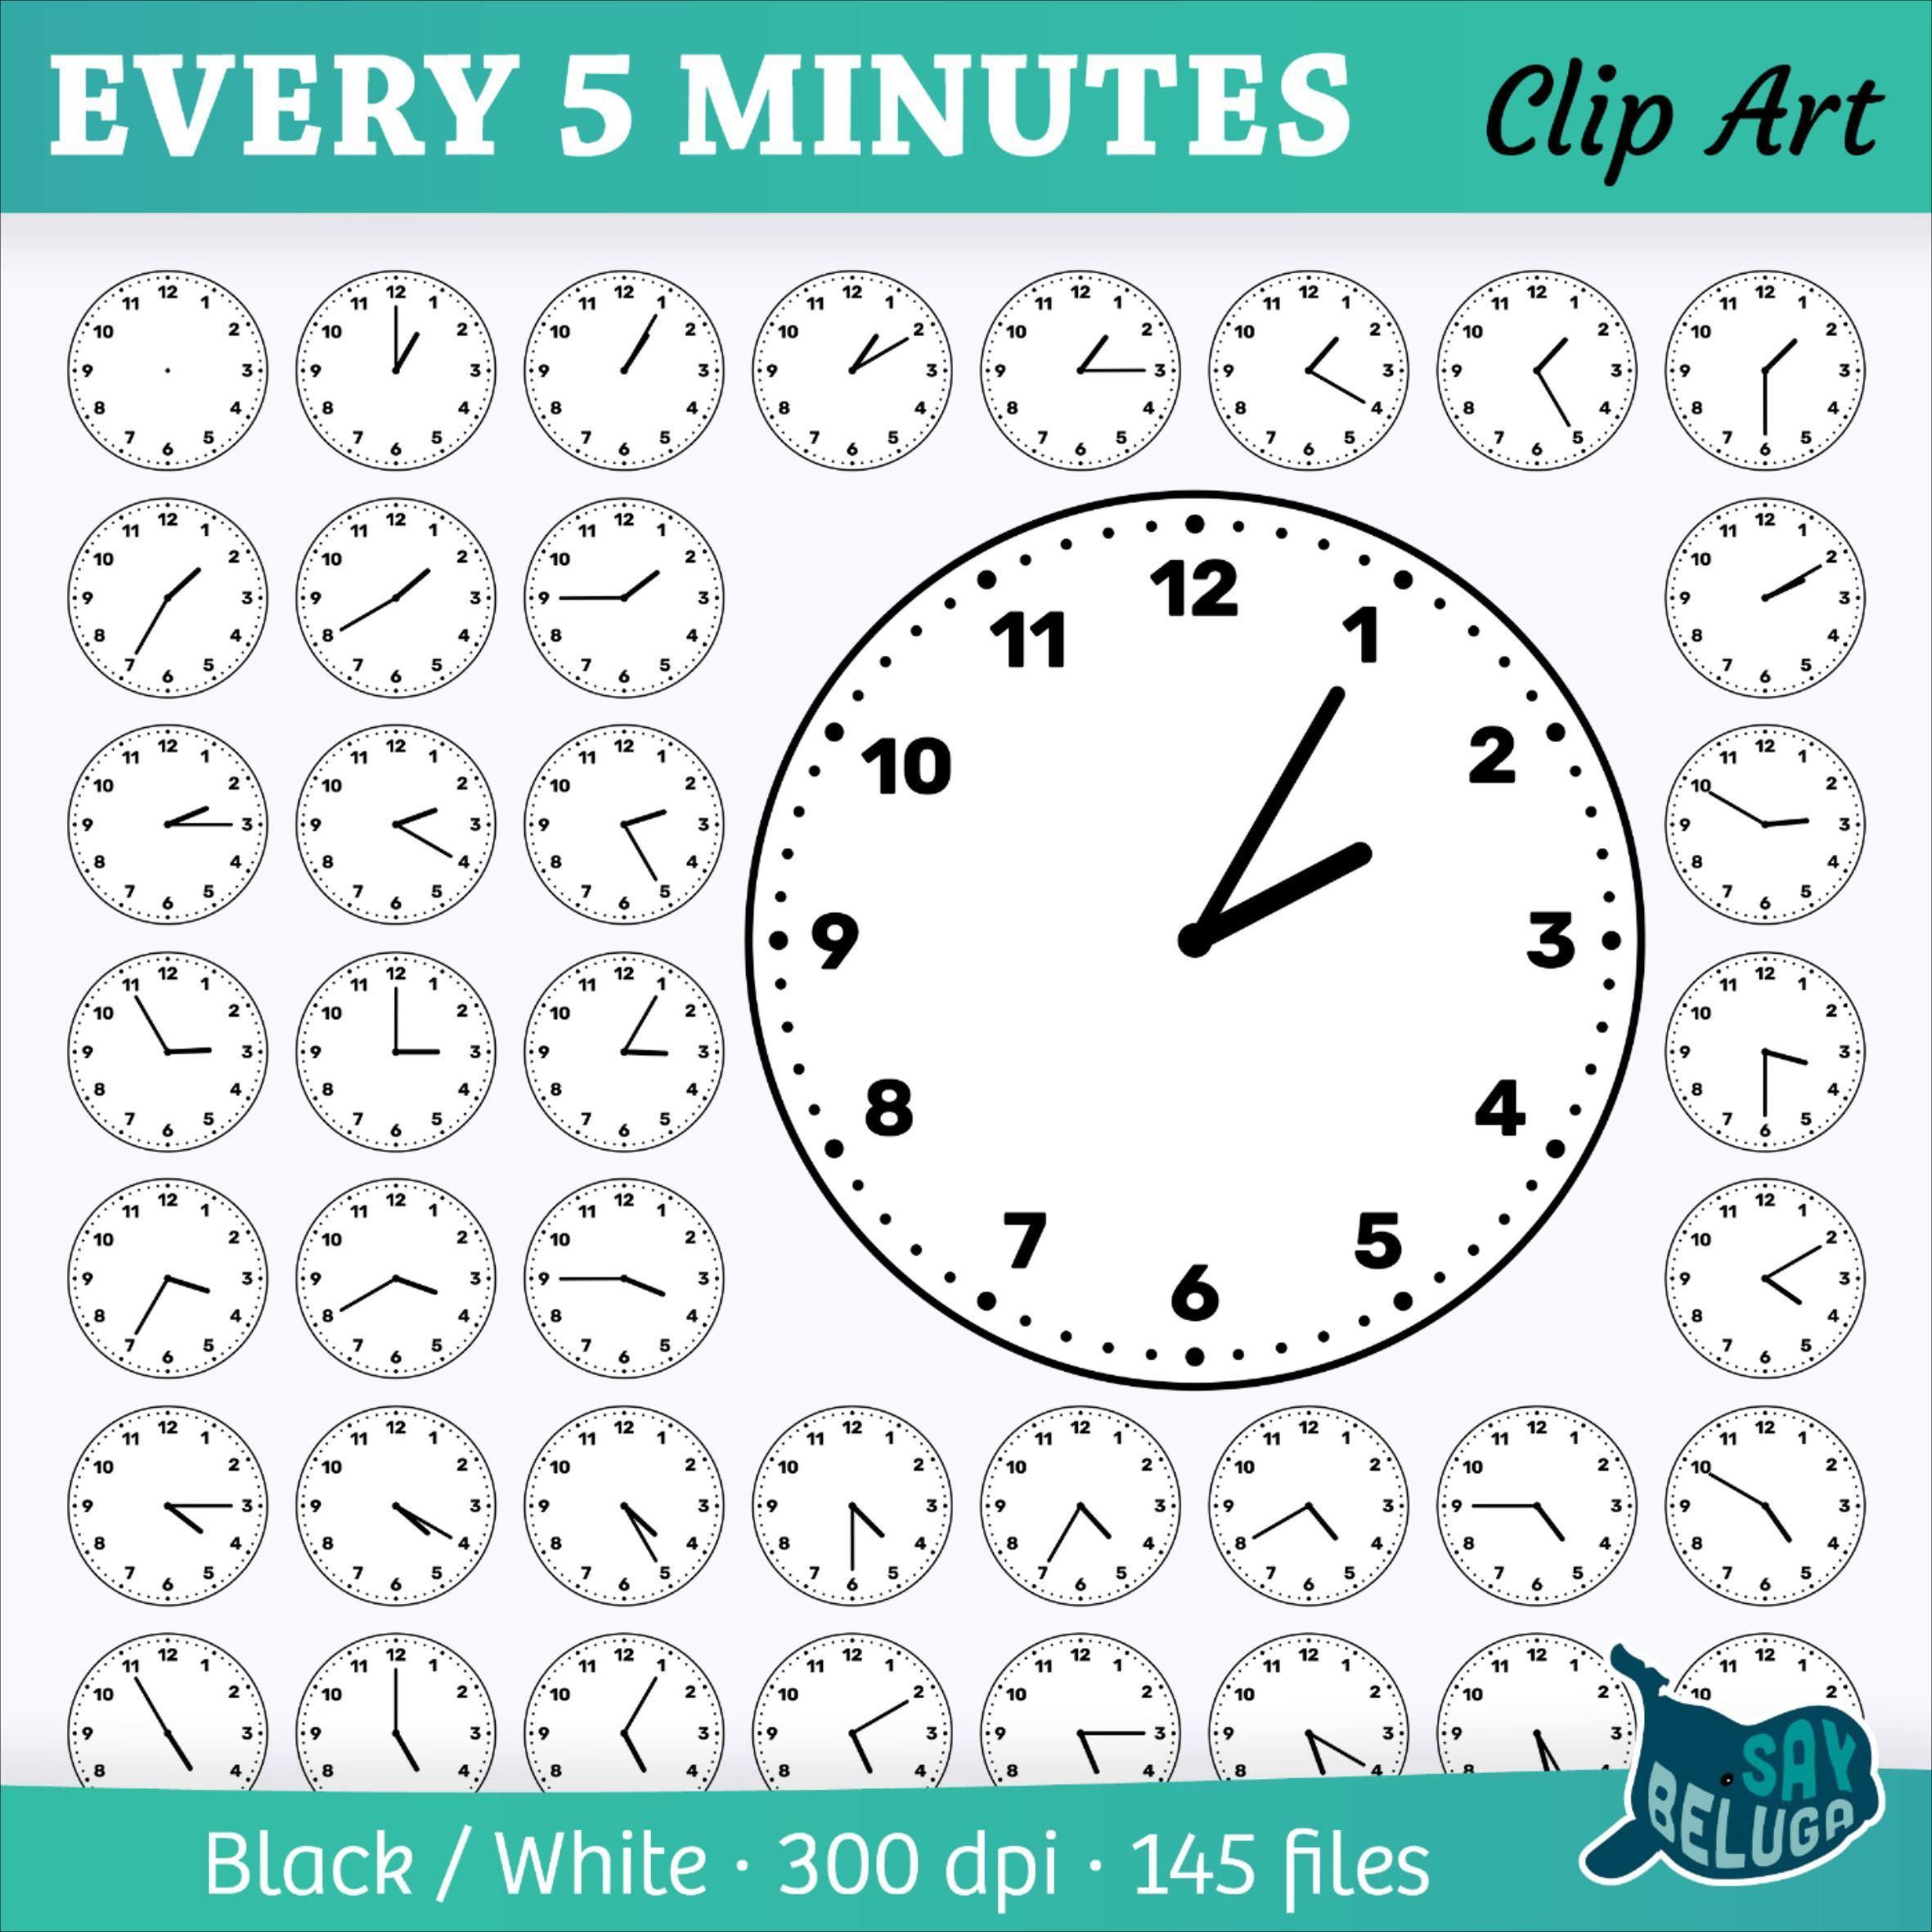 Clock Face Clip Art Every 5 Minutes For Print And